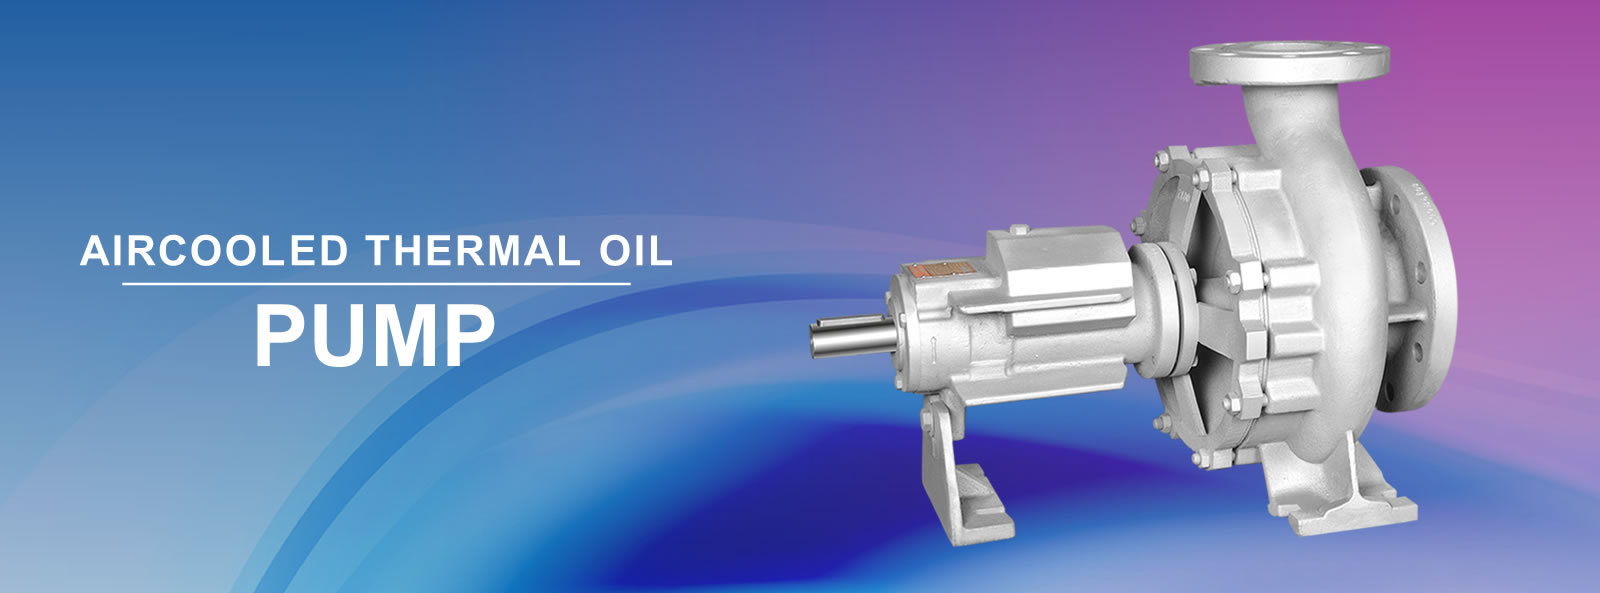 Centrifugal, Thermic Fluid, Progressive Cavity, Hot Oil Circulation Pump Manufacturer & Exporter